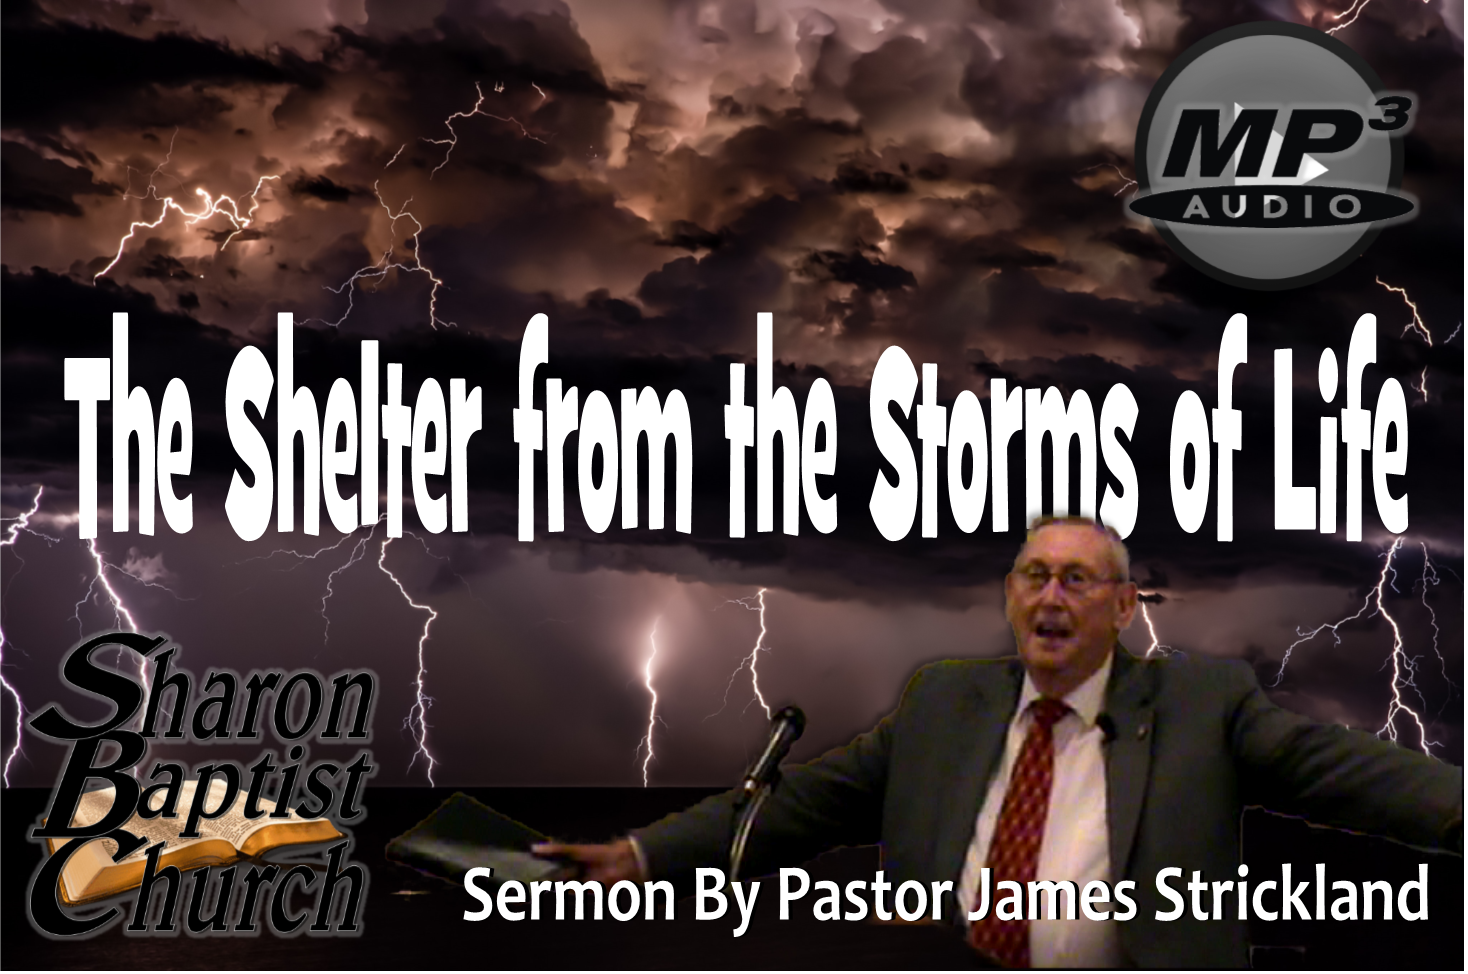 The Shelter from the Storms of Life AUDIO